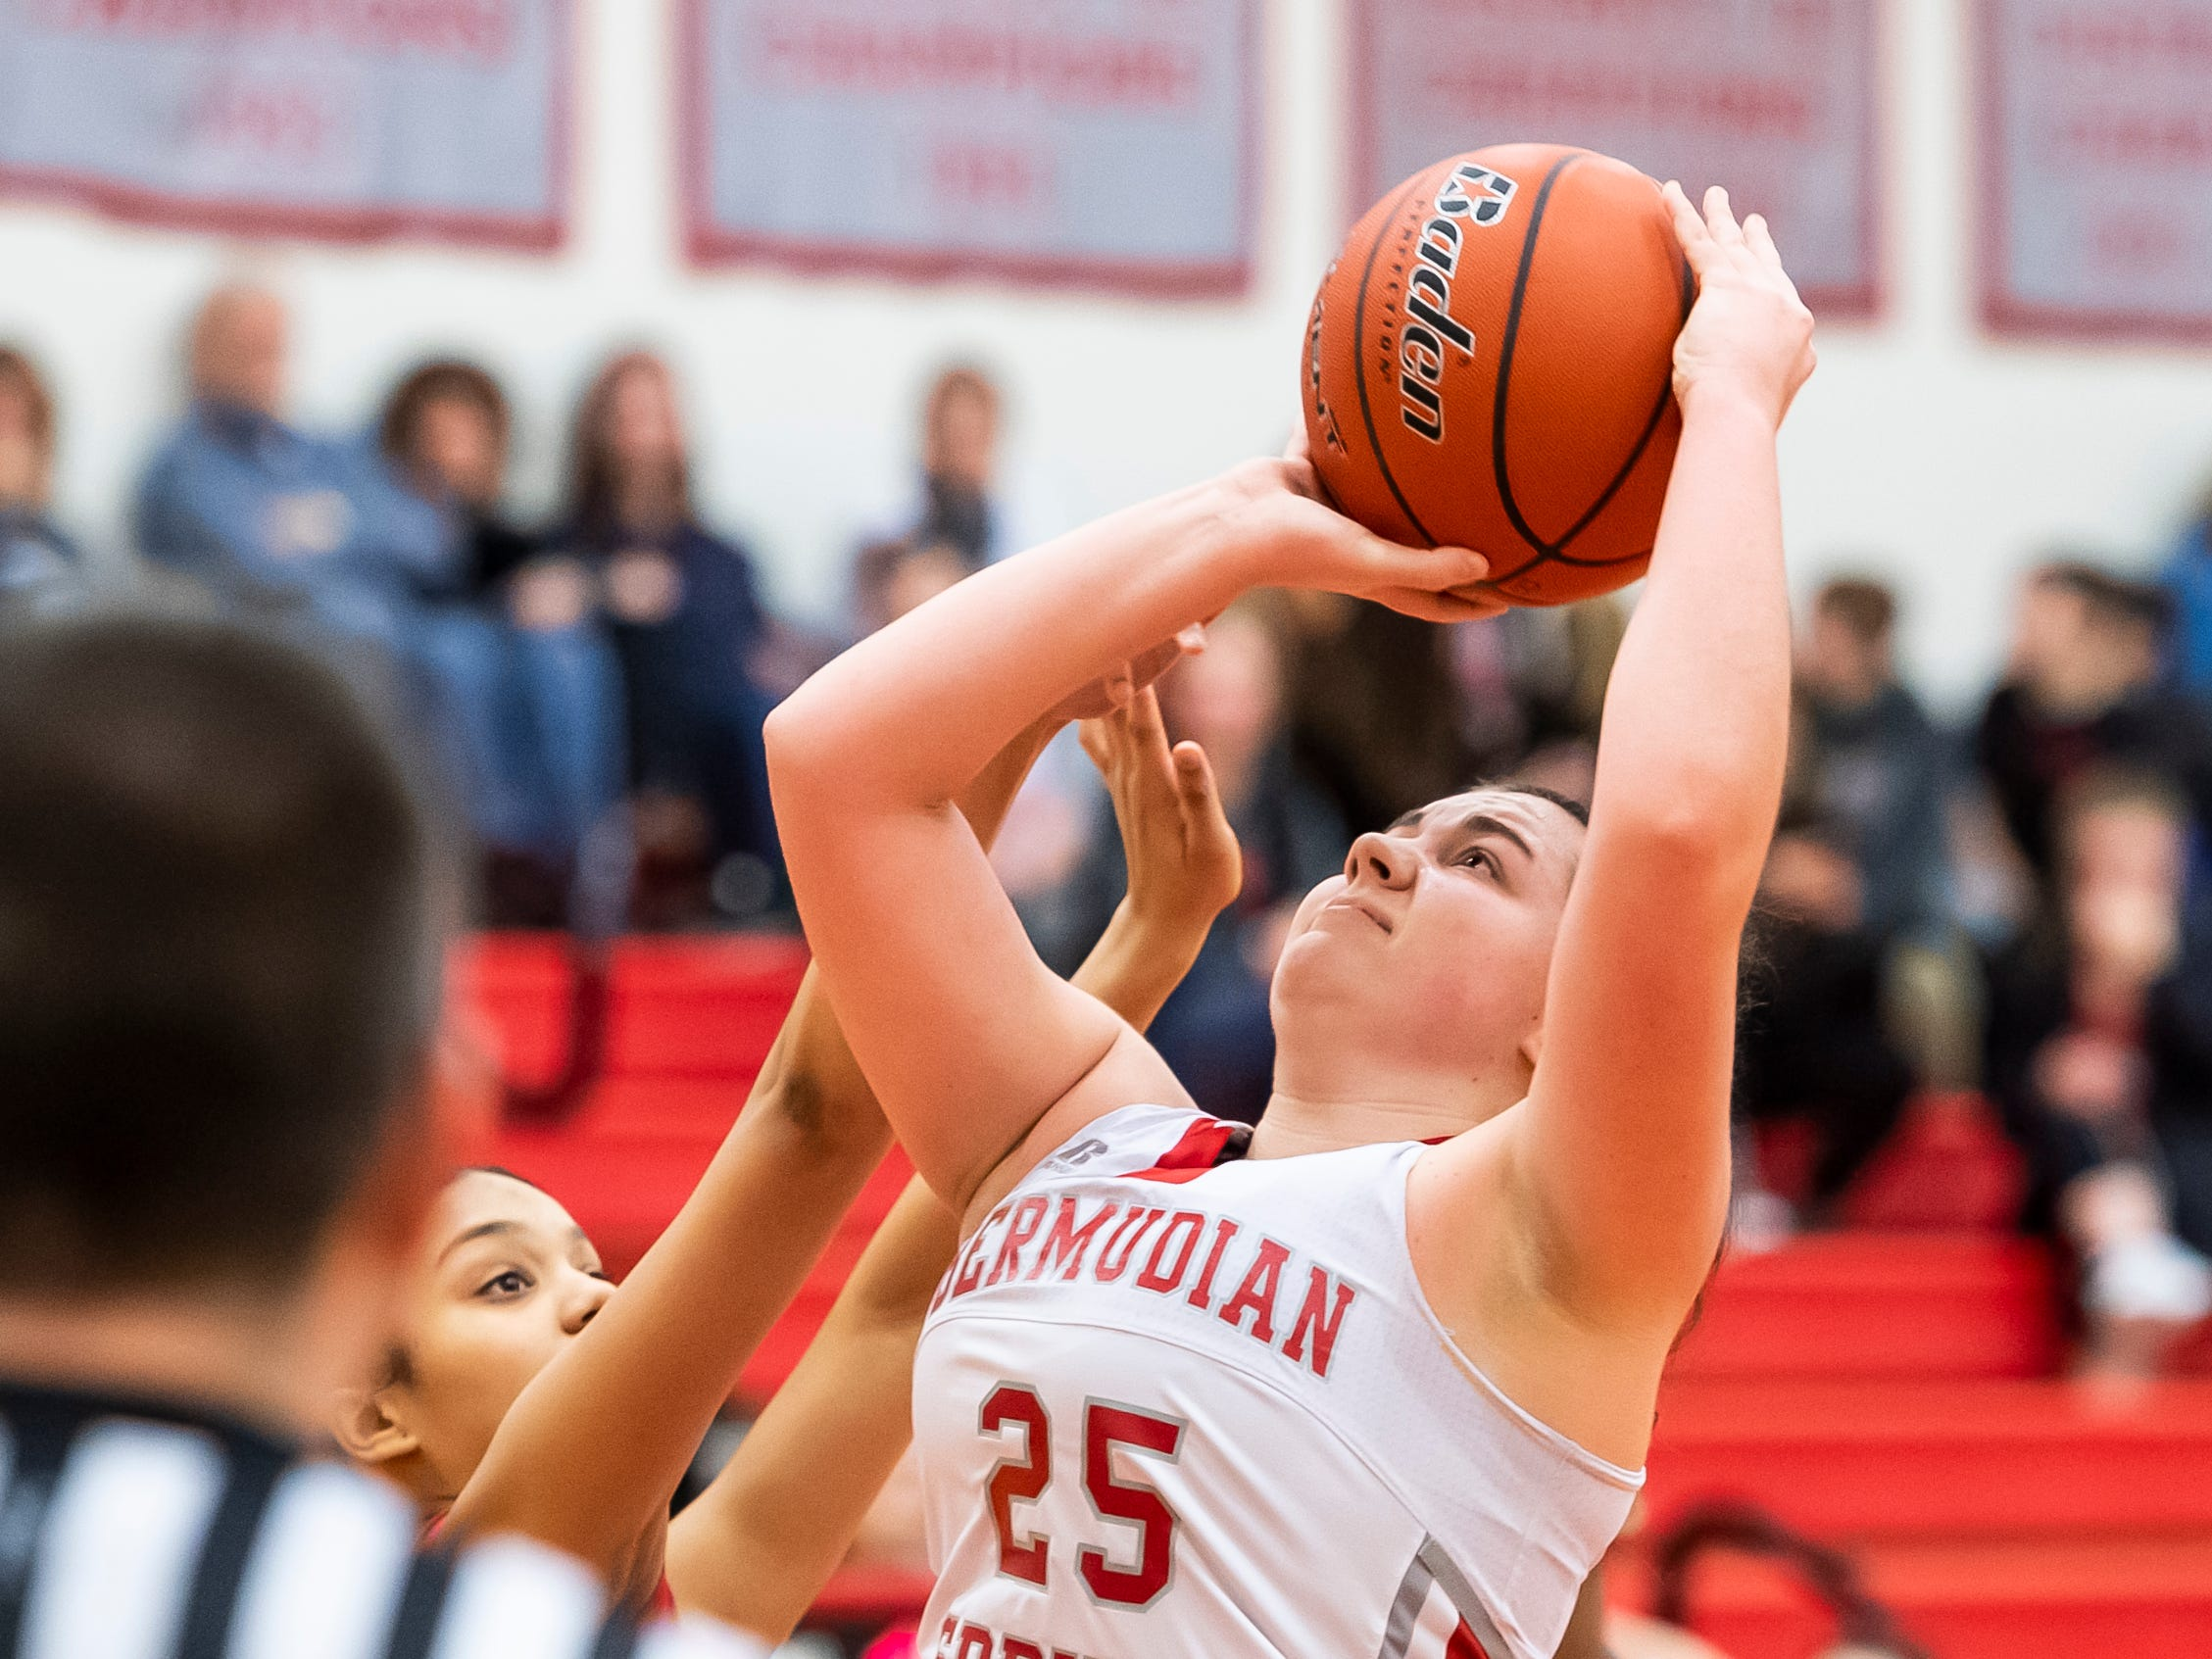 Bermudian Springs' Emily Shearer shoots and scores on a layup during play against York Country Day School at Bermudian Springs High School on Monday, January 14, 2019. The Eagles won 59-20.